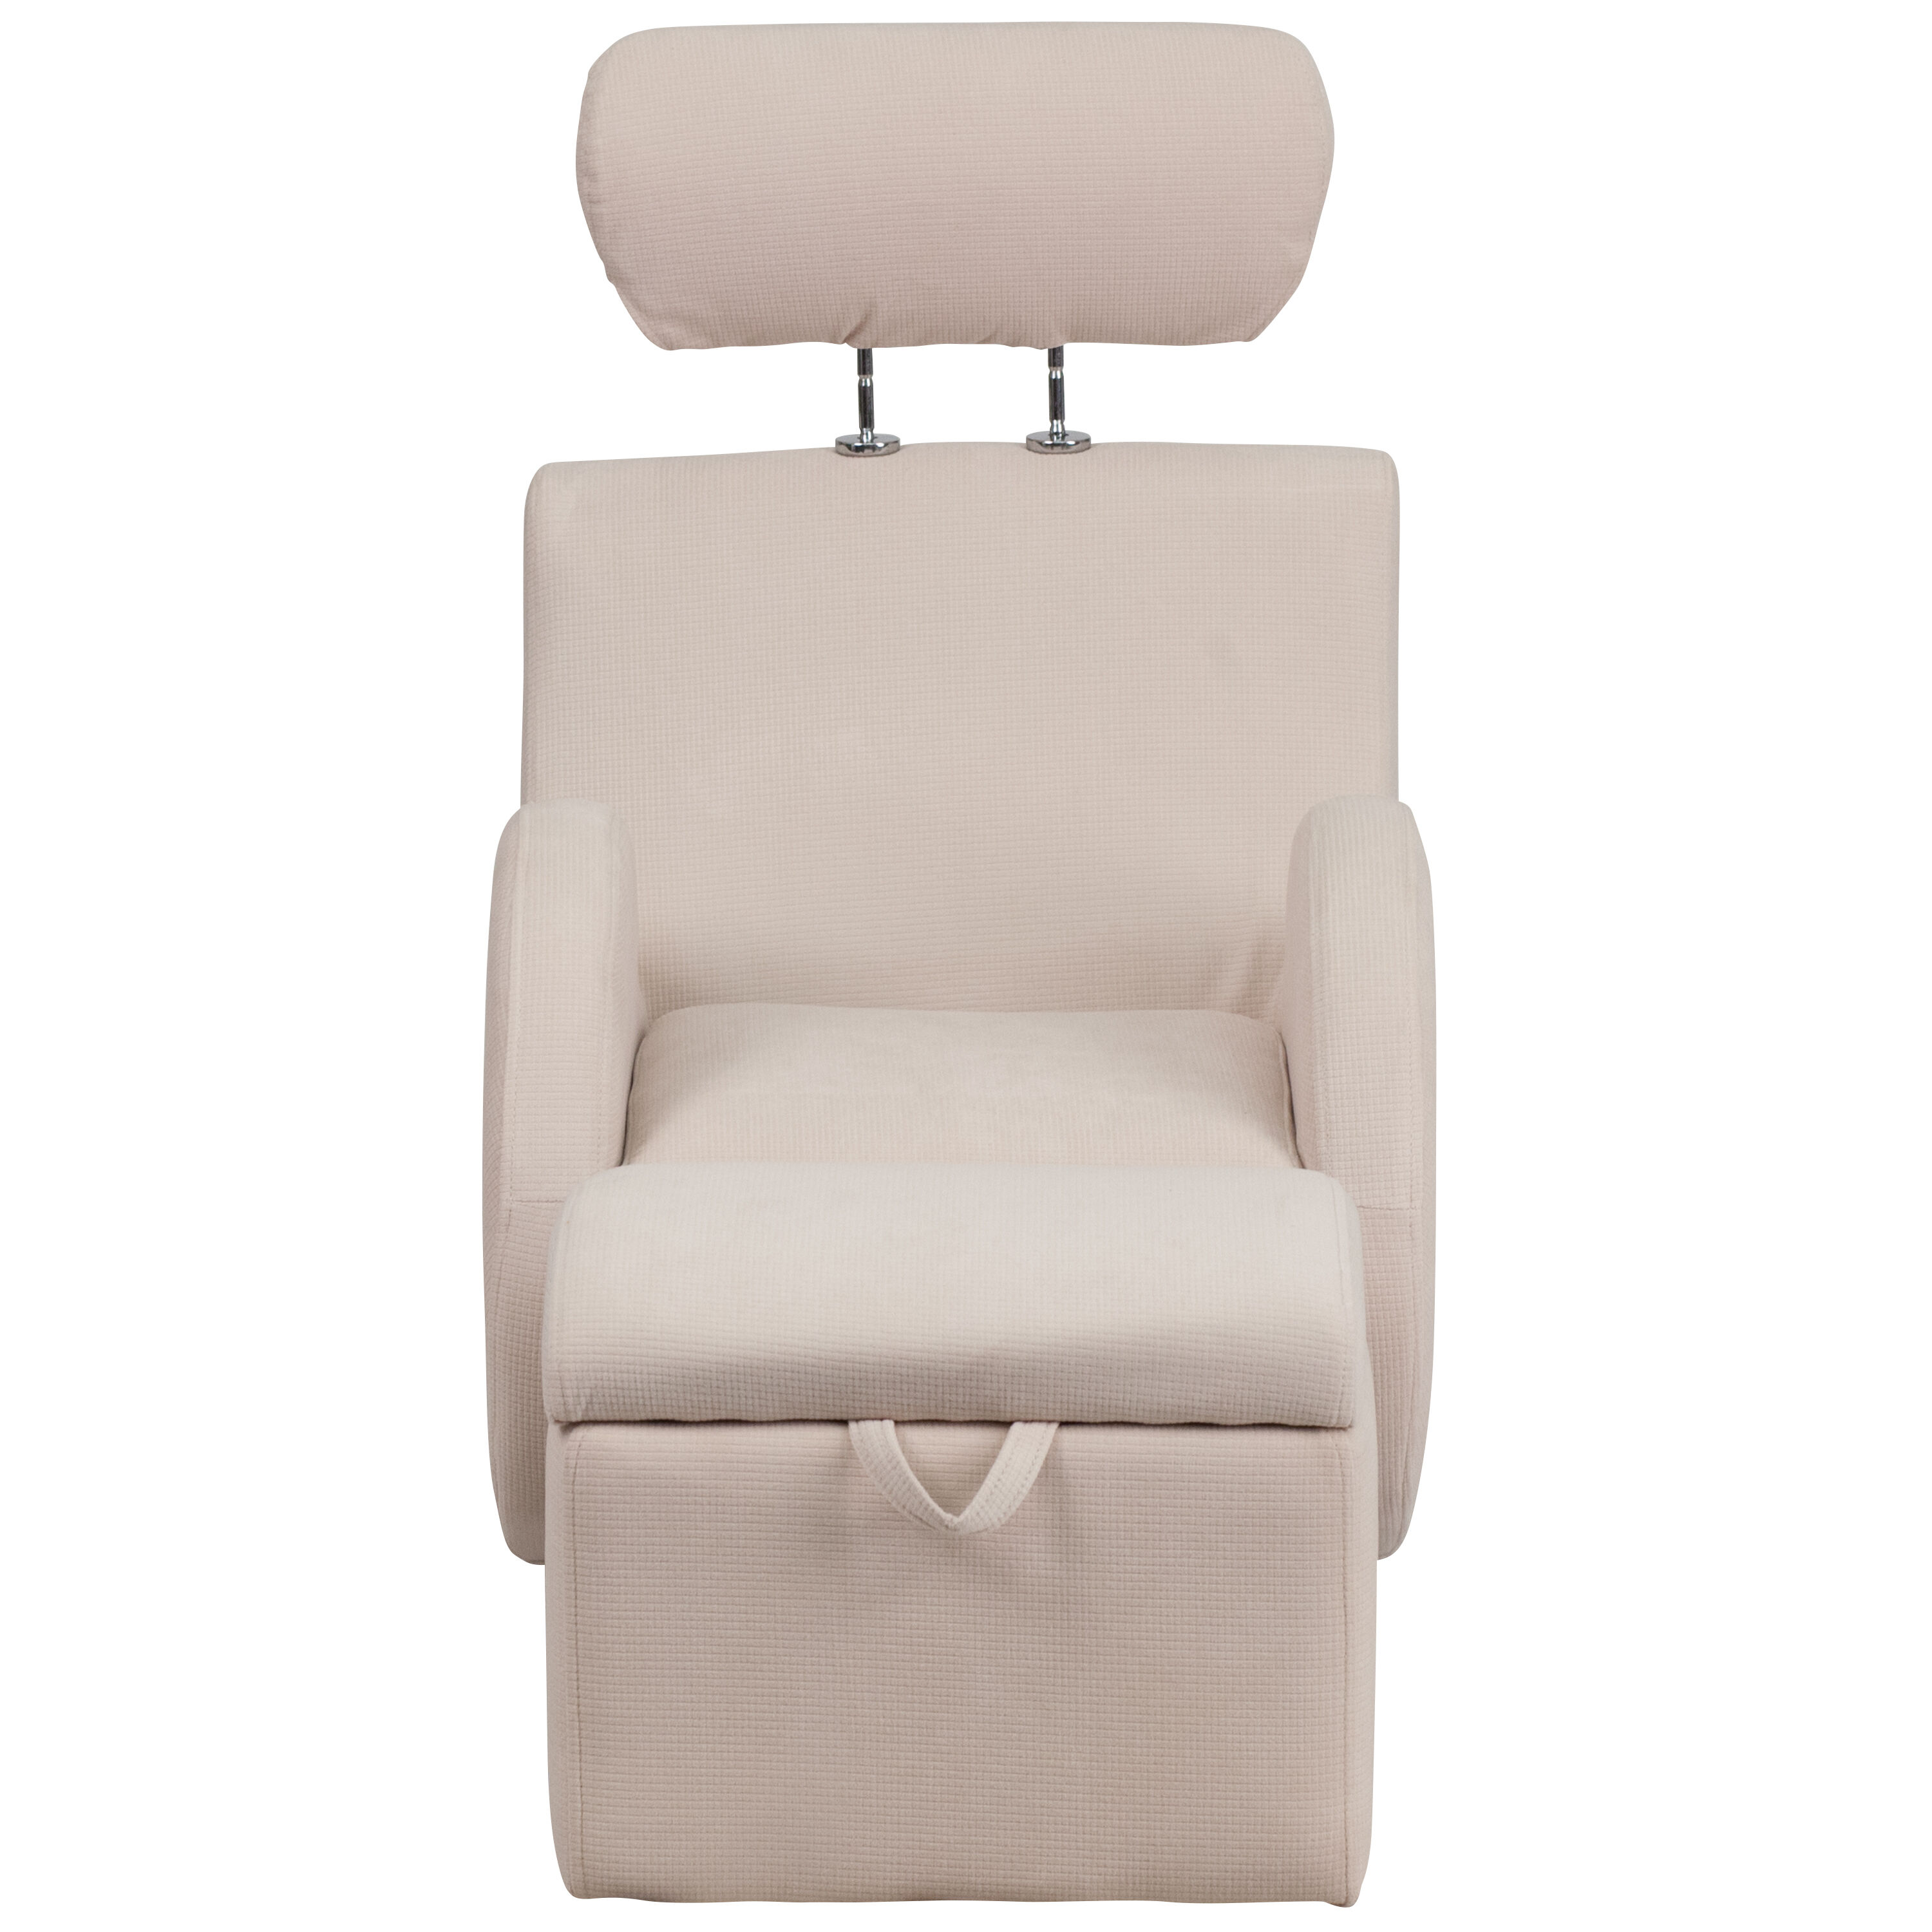 Our HERCULES Series Beige Fabric Rocking Chair With Storage Ottoman Is On  Sale Now.